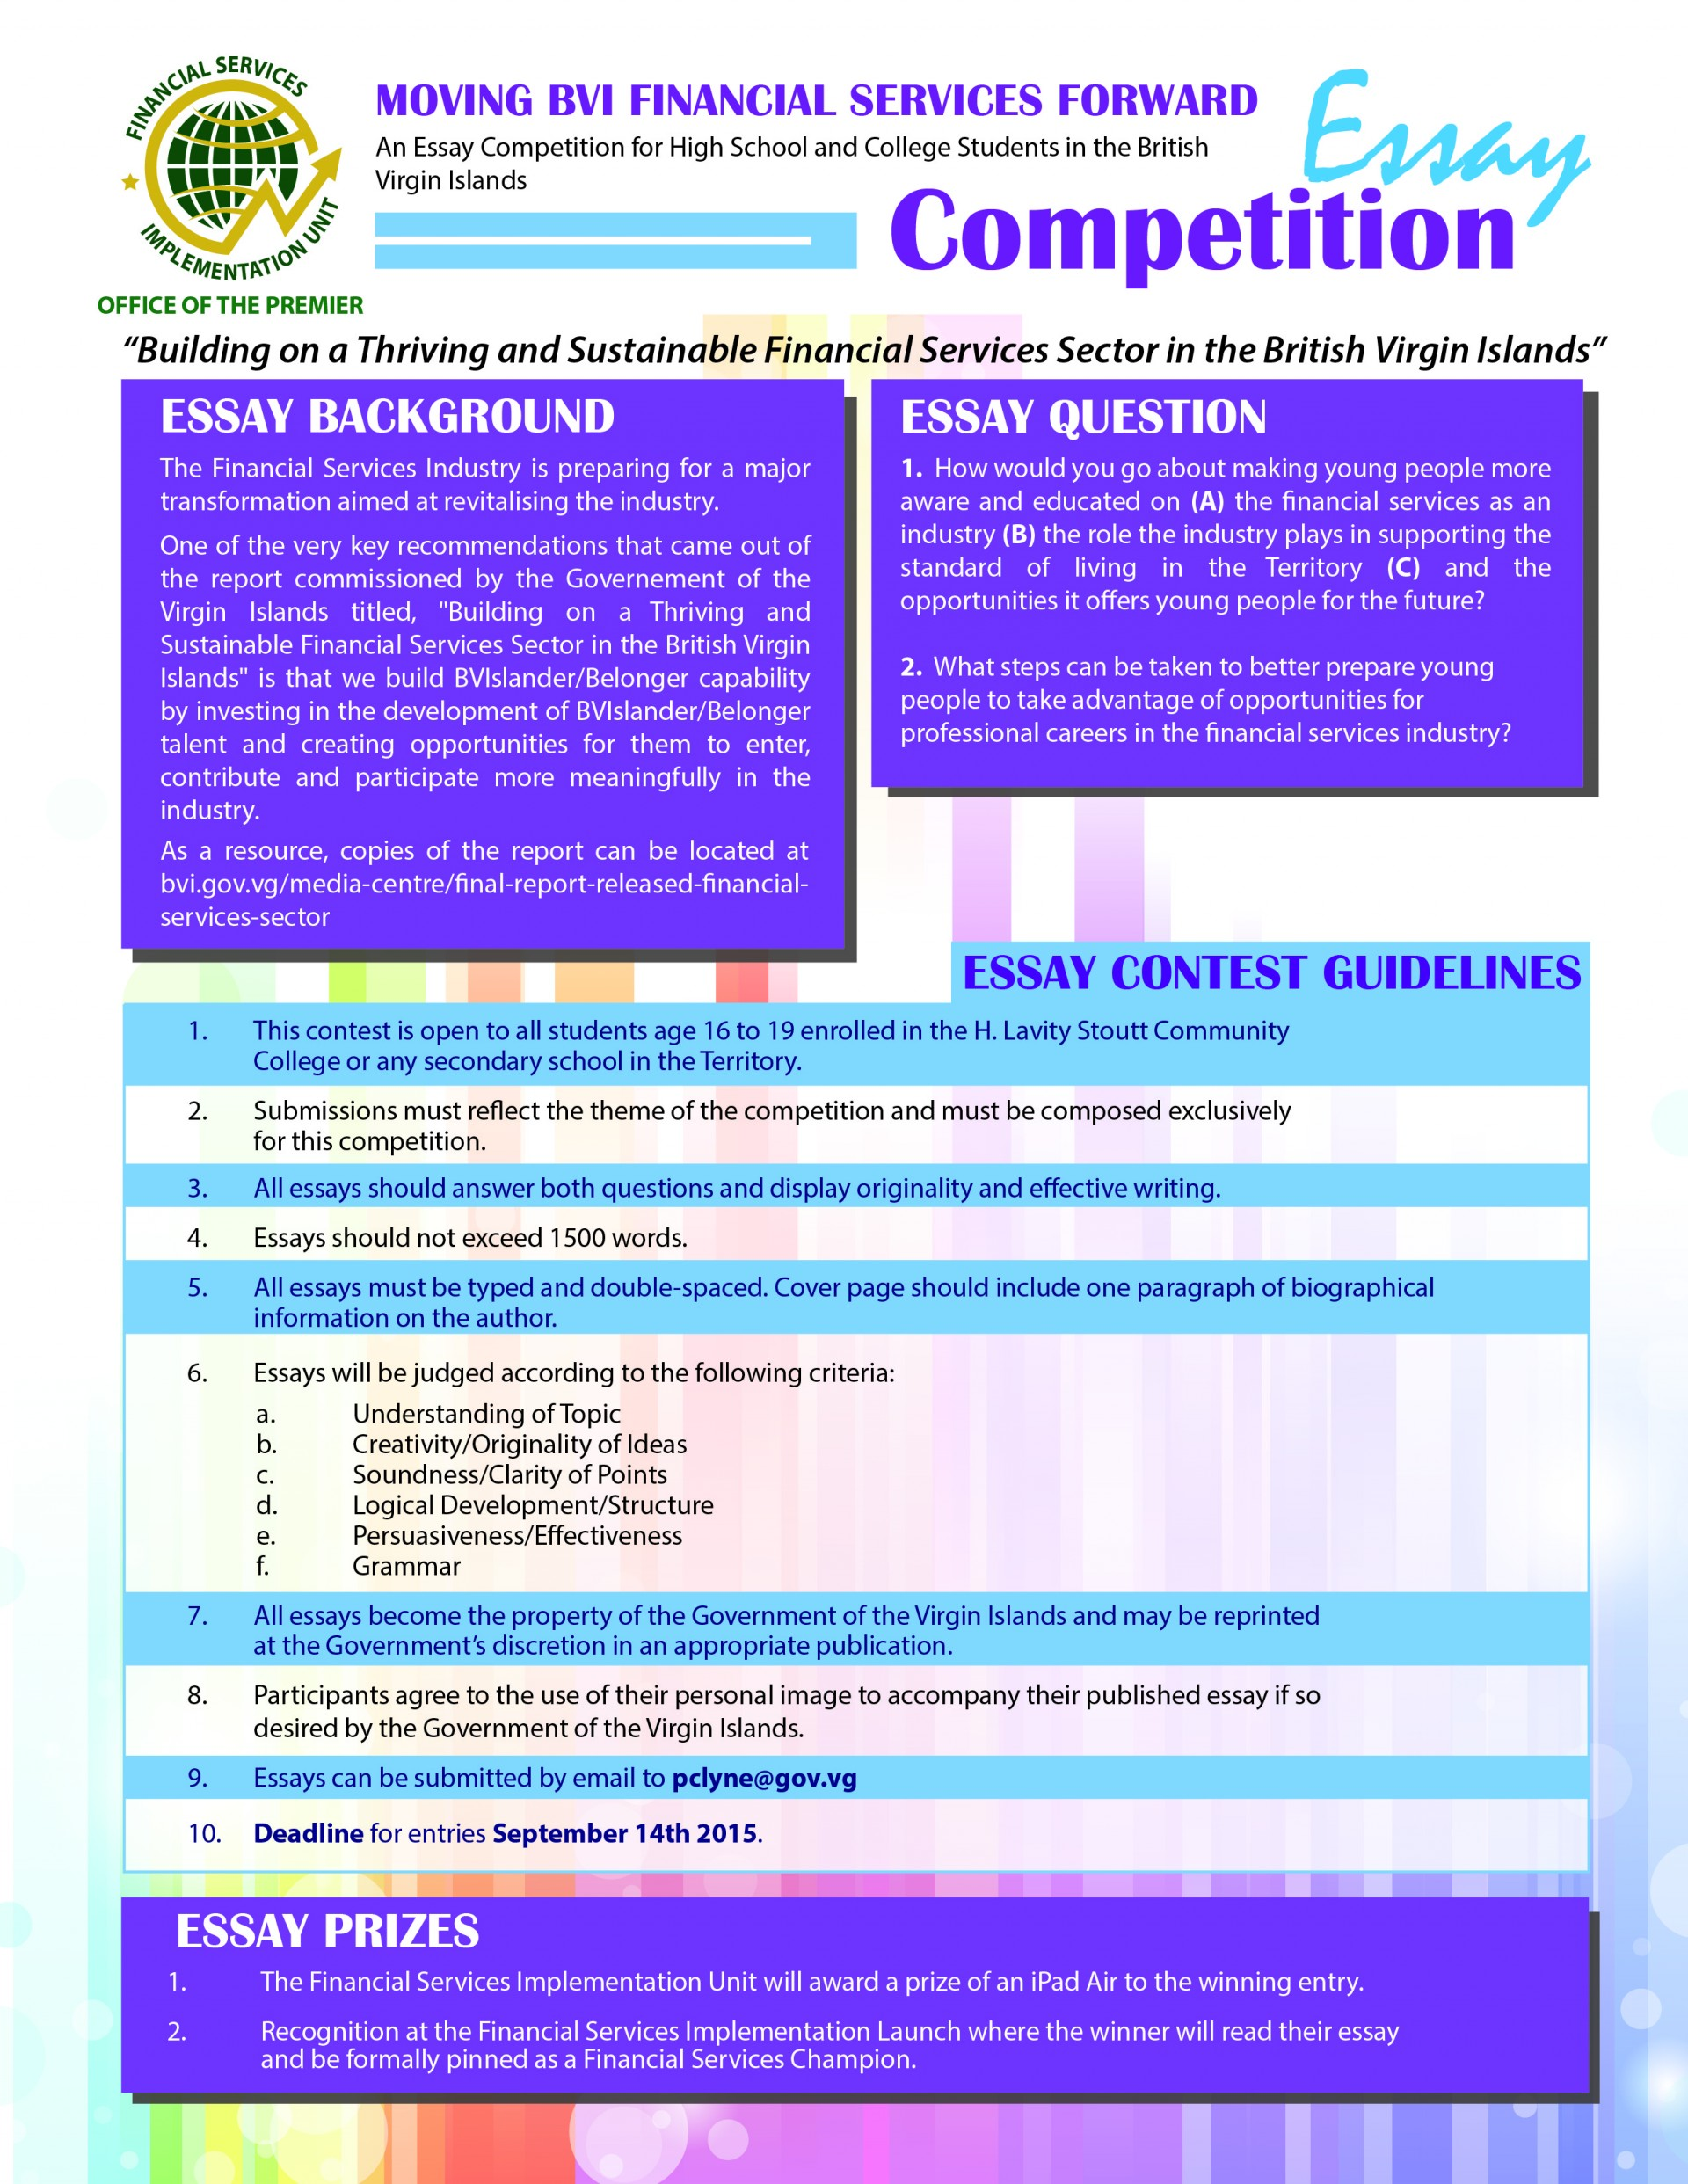 003 Essay Contests For High School Students Example Essays On Competition Oxbridge College 344  Financial Services Targets Staggering 20171920